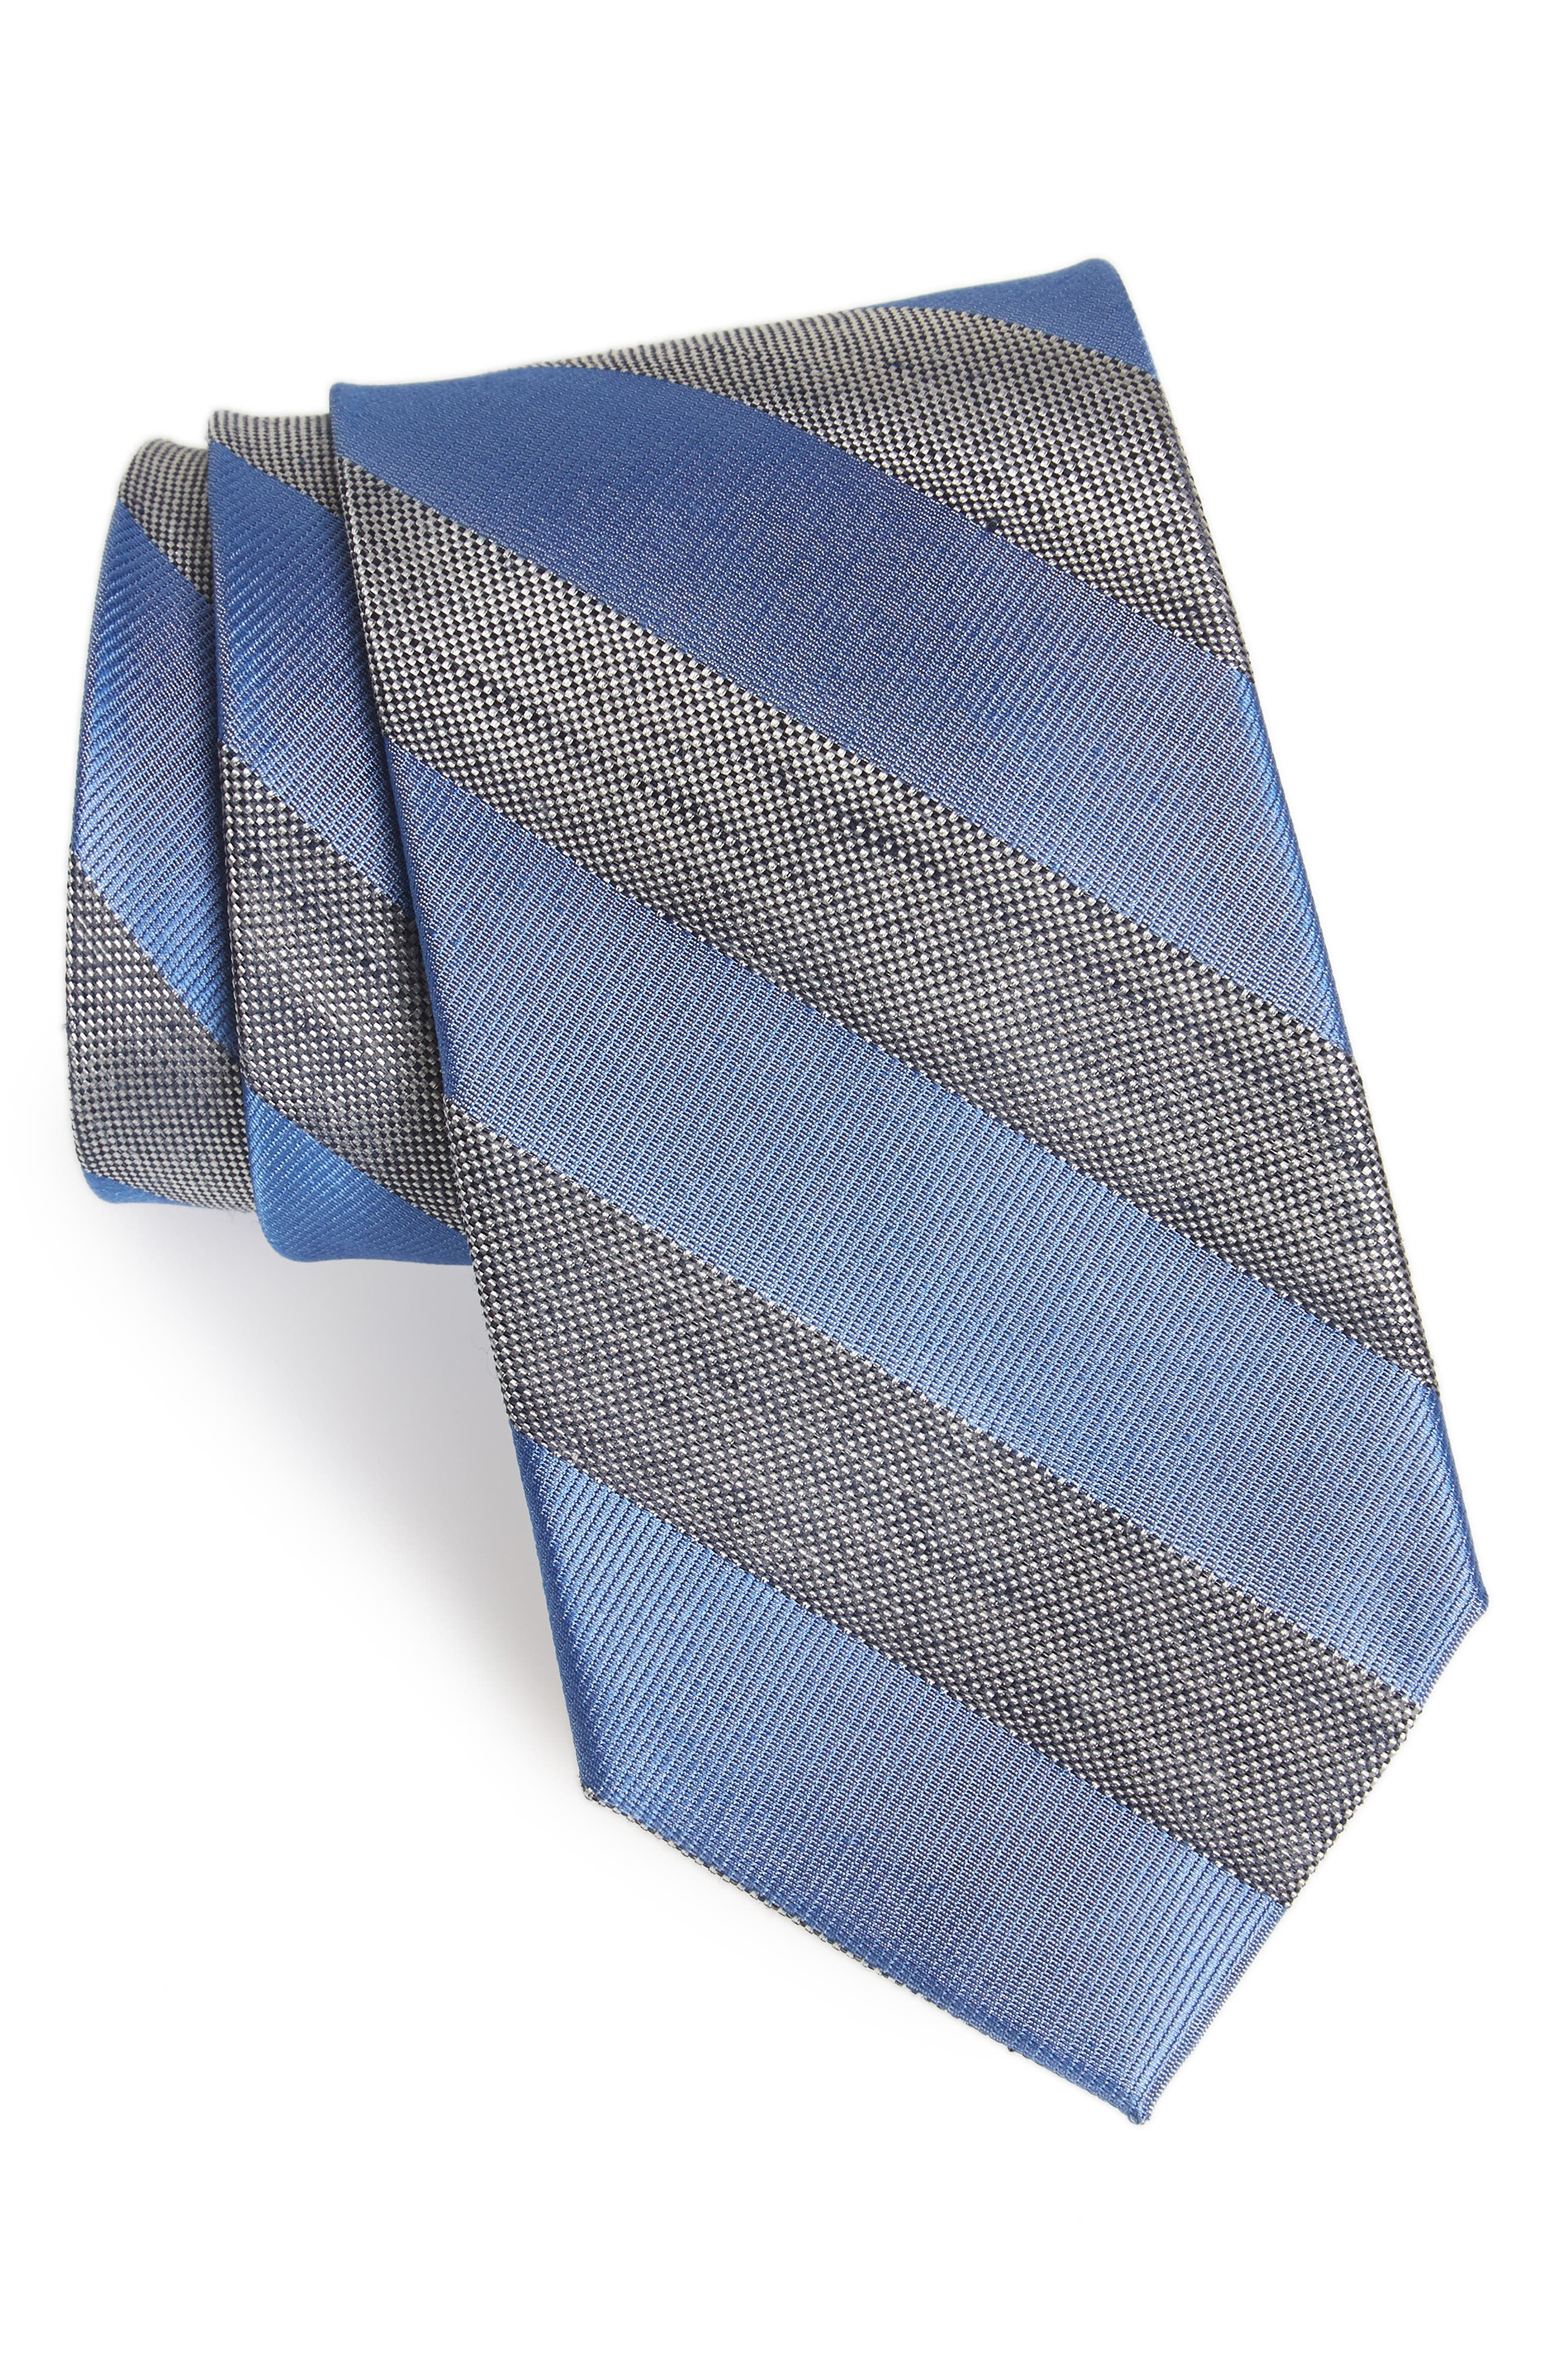 Bomer Stripe Silk & Linen Tie,                         Main,                         color, 400